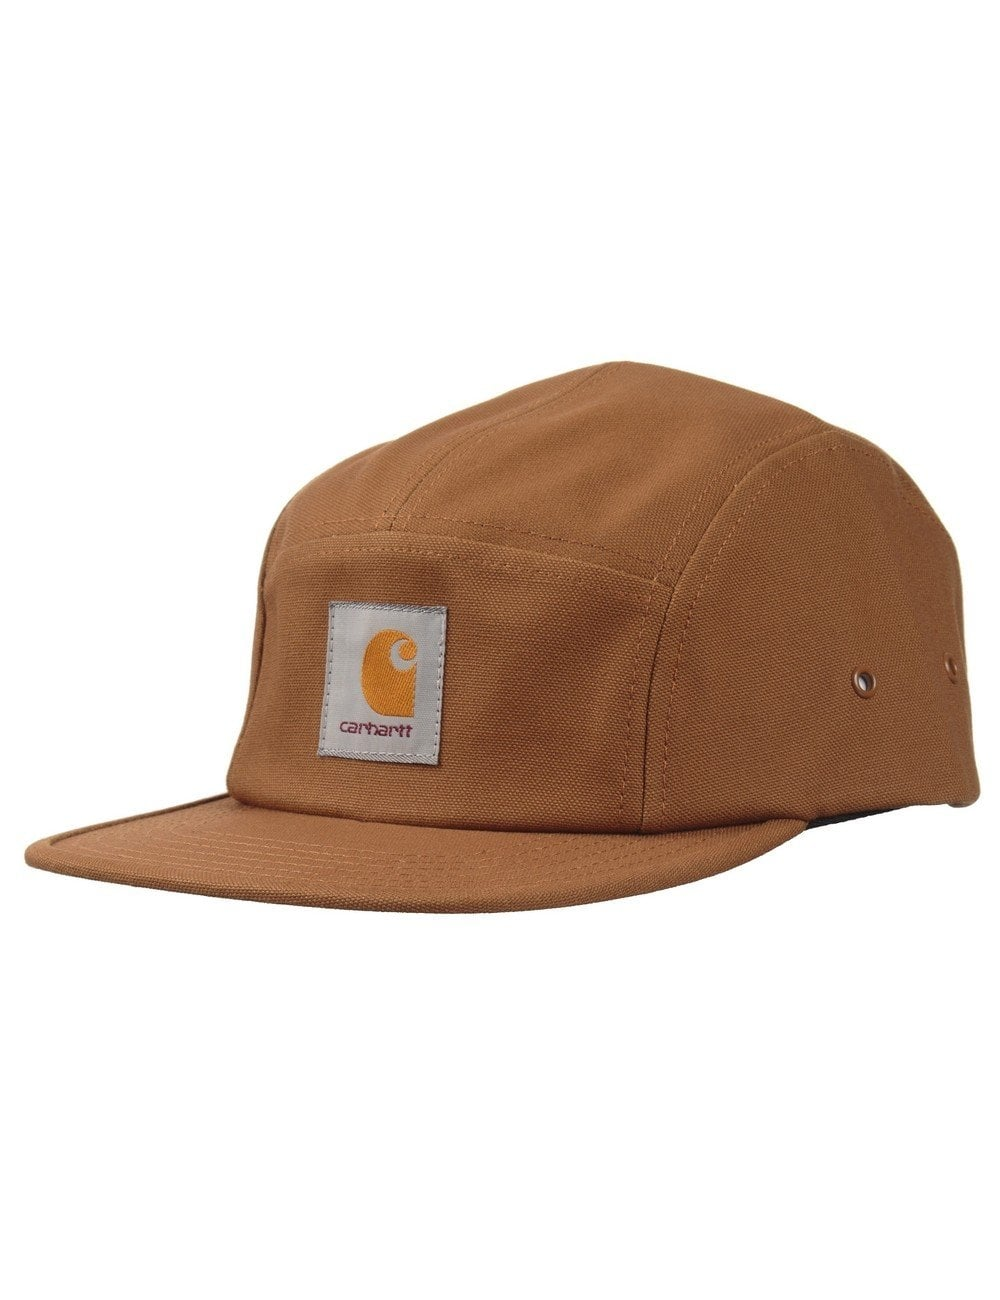 16f76608 Carhartt WIP Backley 5 Panel Cap - Hamilton Brown - Accessories from ...